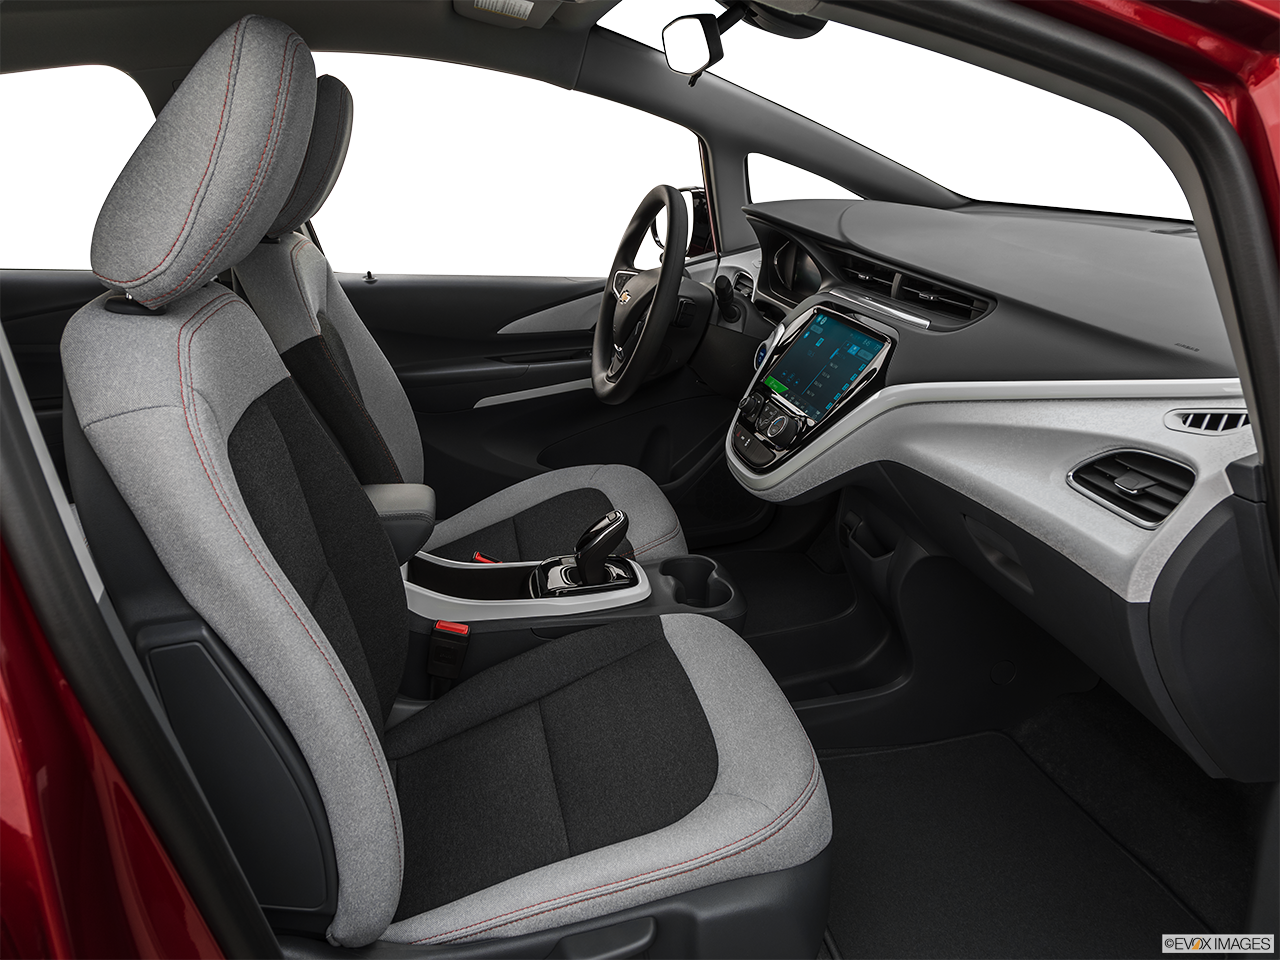 Interior view of the Chevrolet Bolt